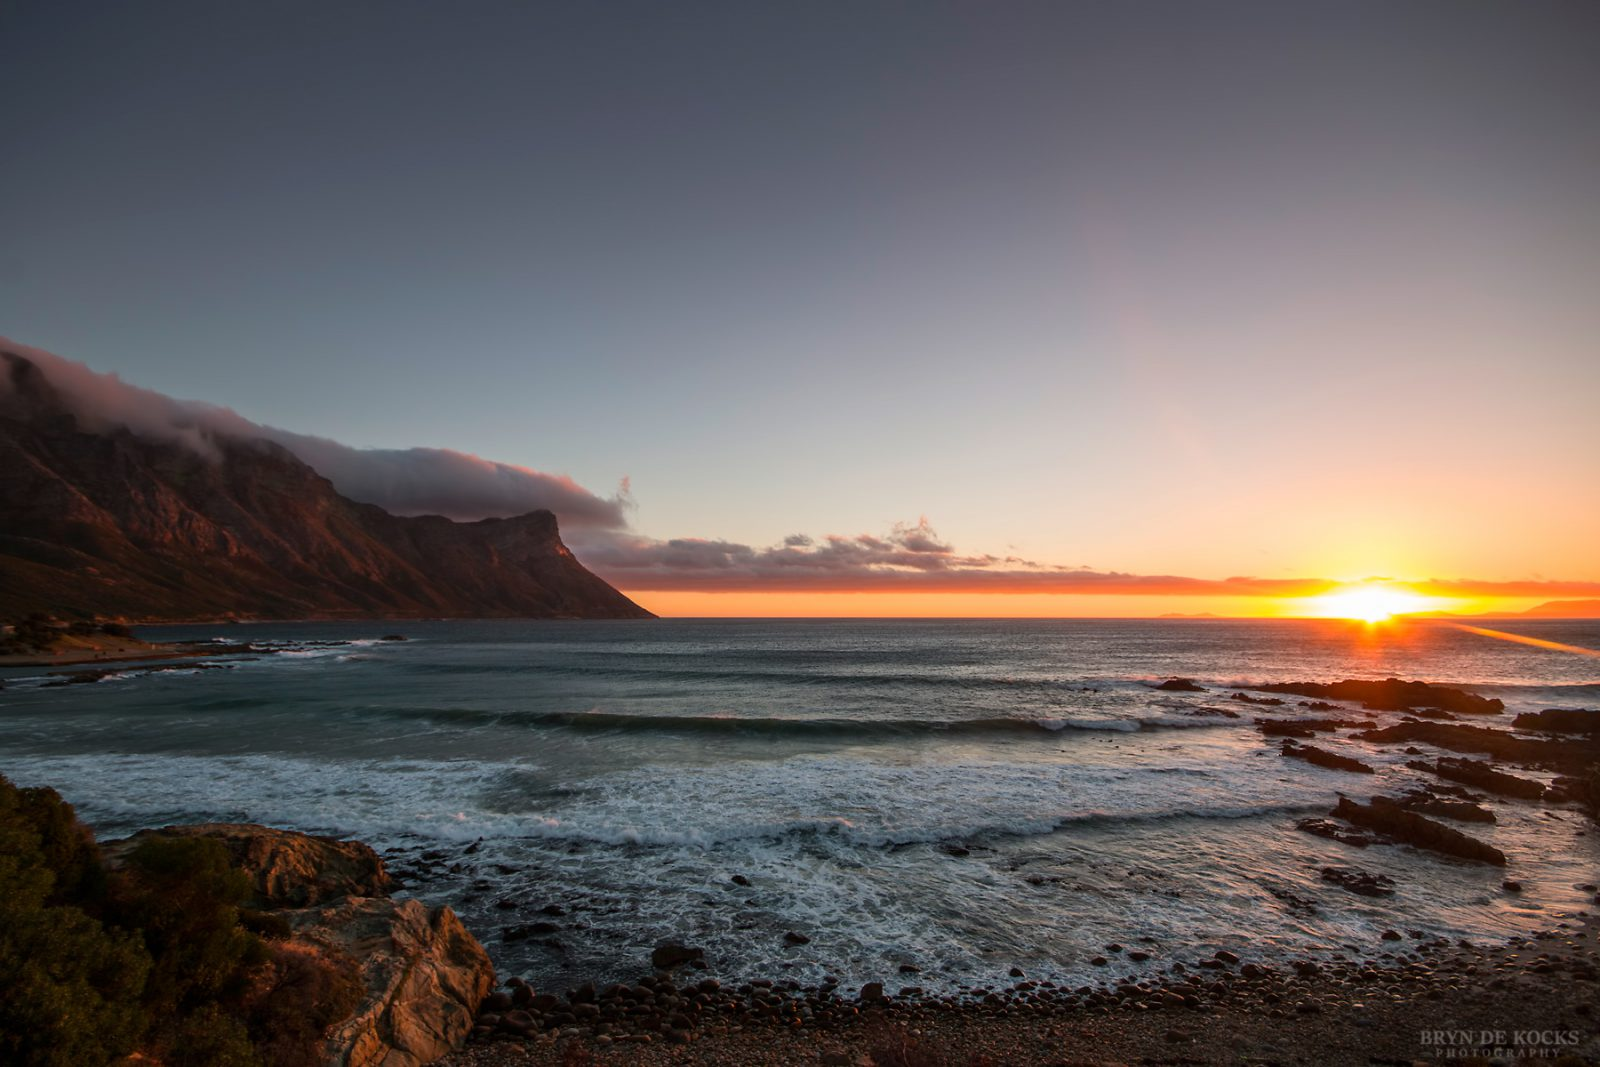 Kogelbaai Sunset Facing West